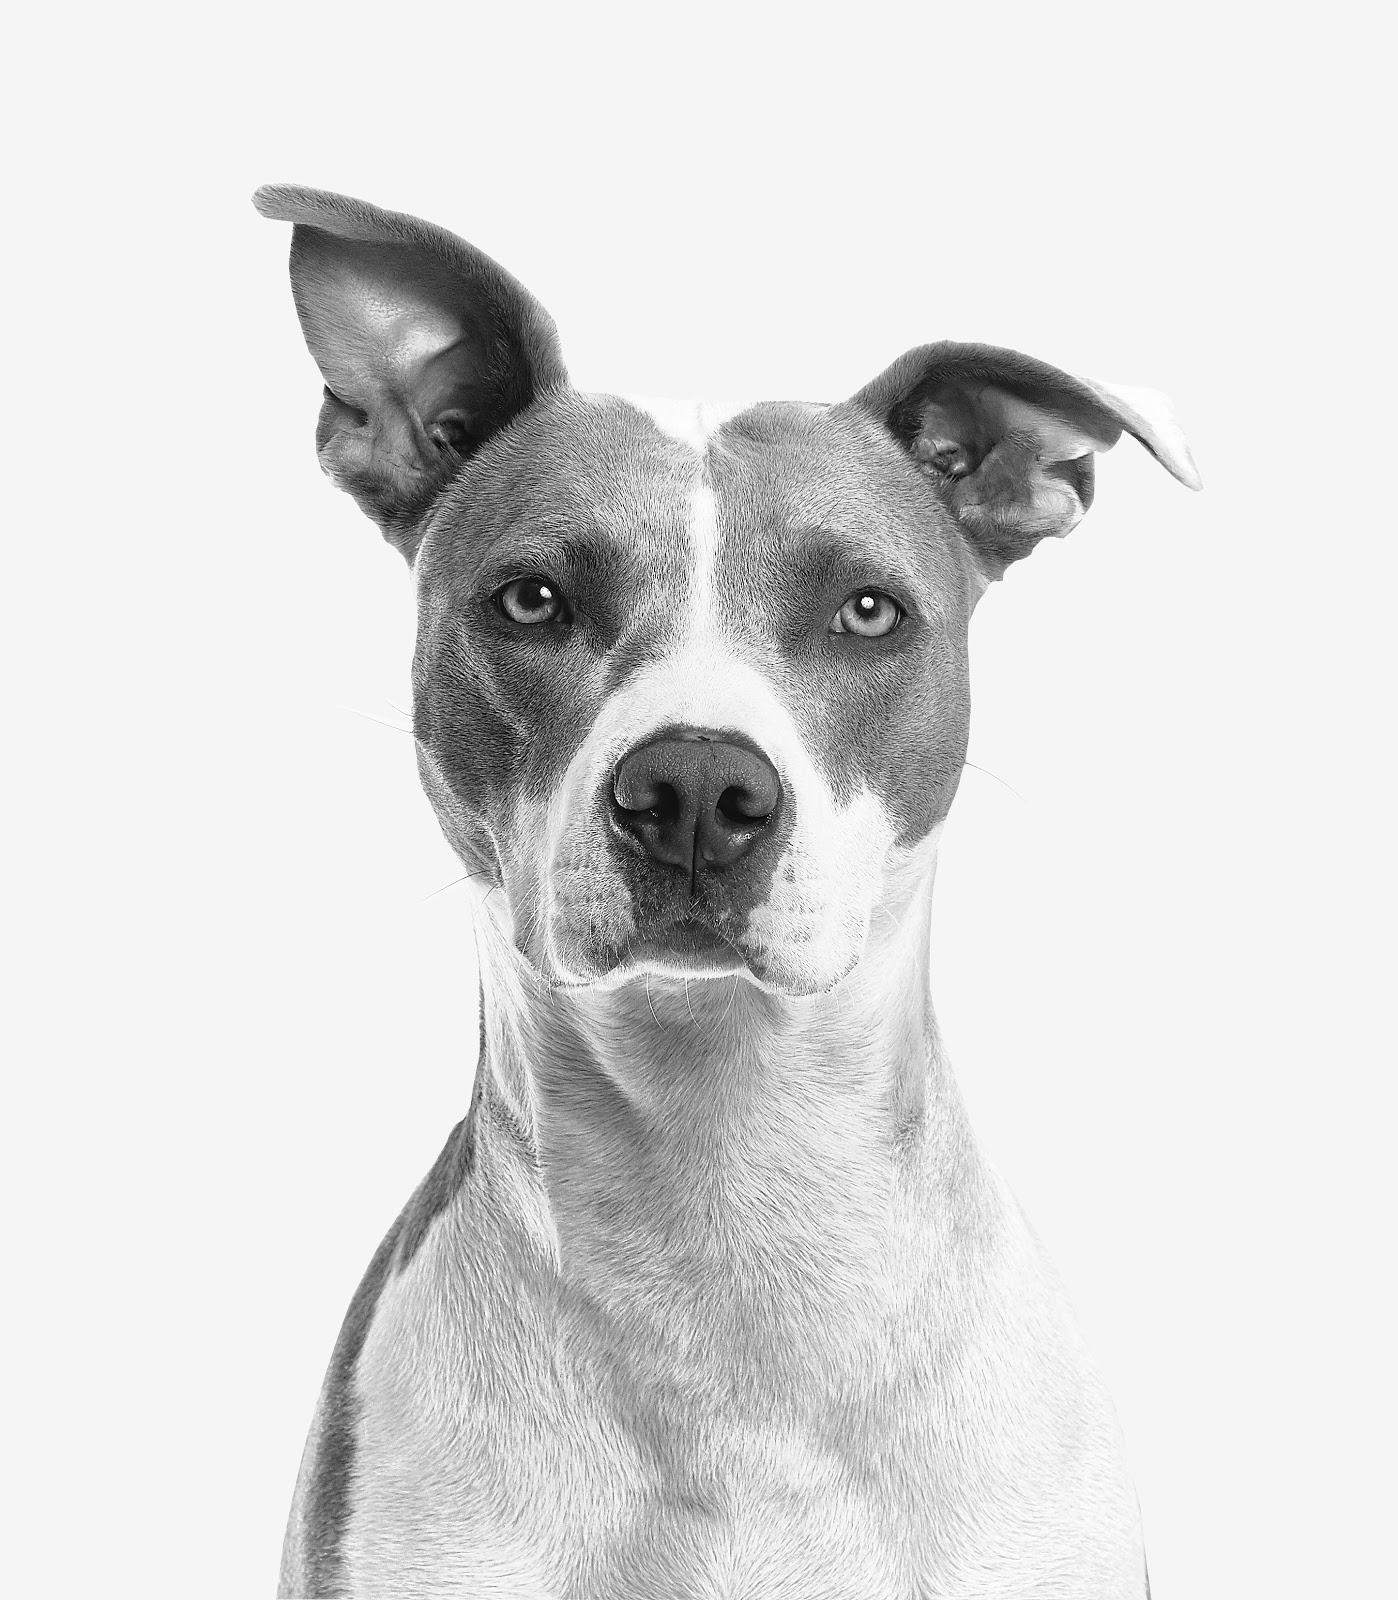 black and white photo of a dog